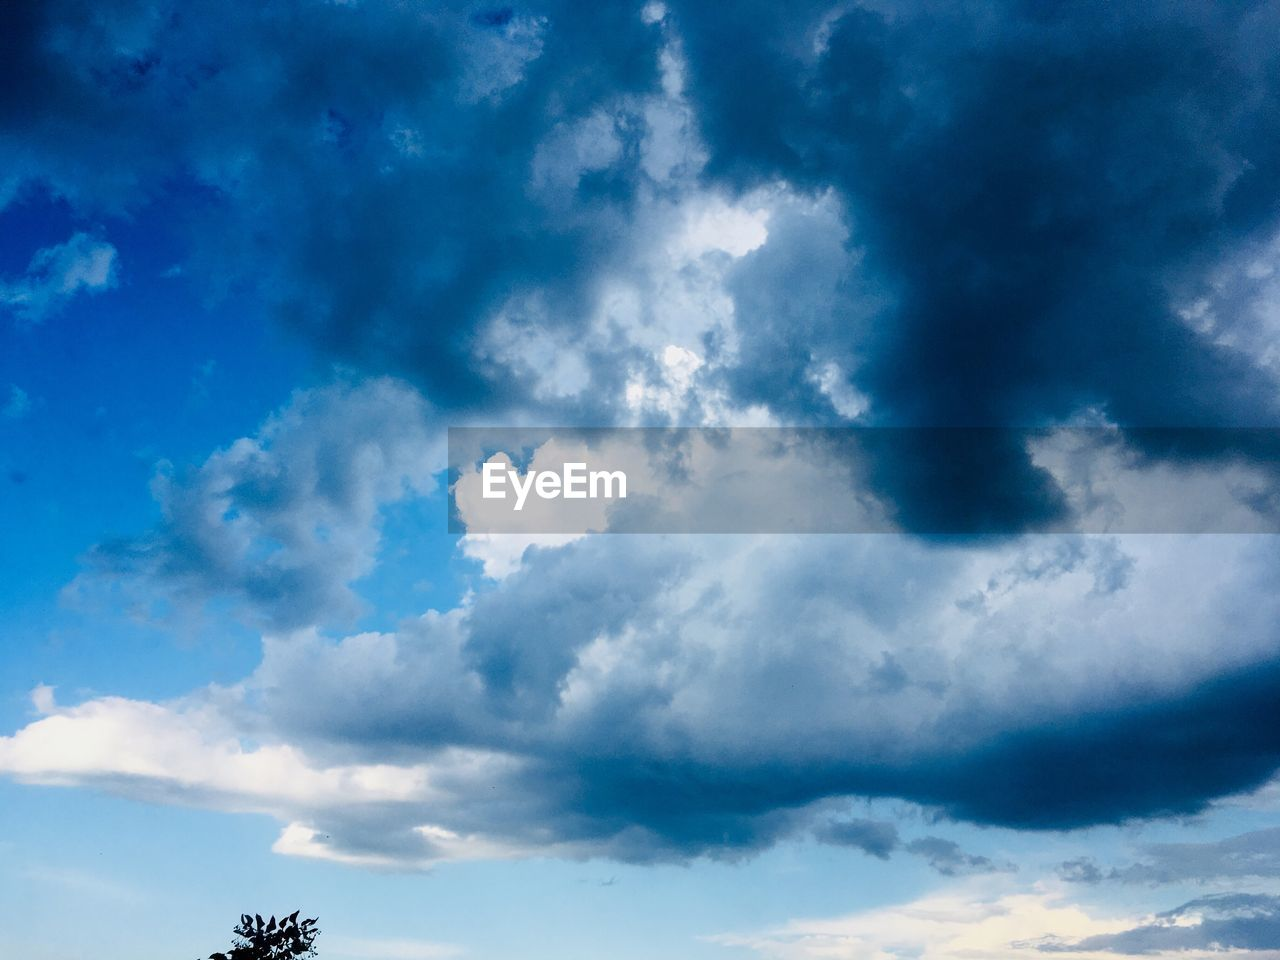 cloud - sky, sky, low angle view, beauty in nature, scenics - nature, blue, nature, no people, day, tranquility, outdoors, tranquil scene, cloudscape, idyllic, backgrounds, sunlight, dramatic sky, white color, non-urban scene, meteorology